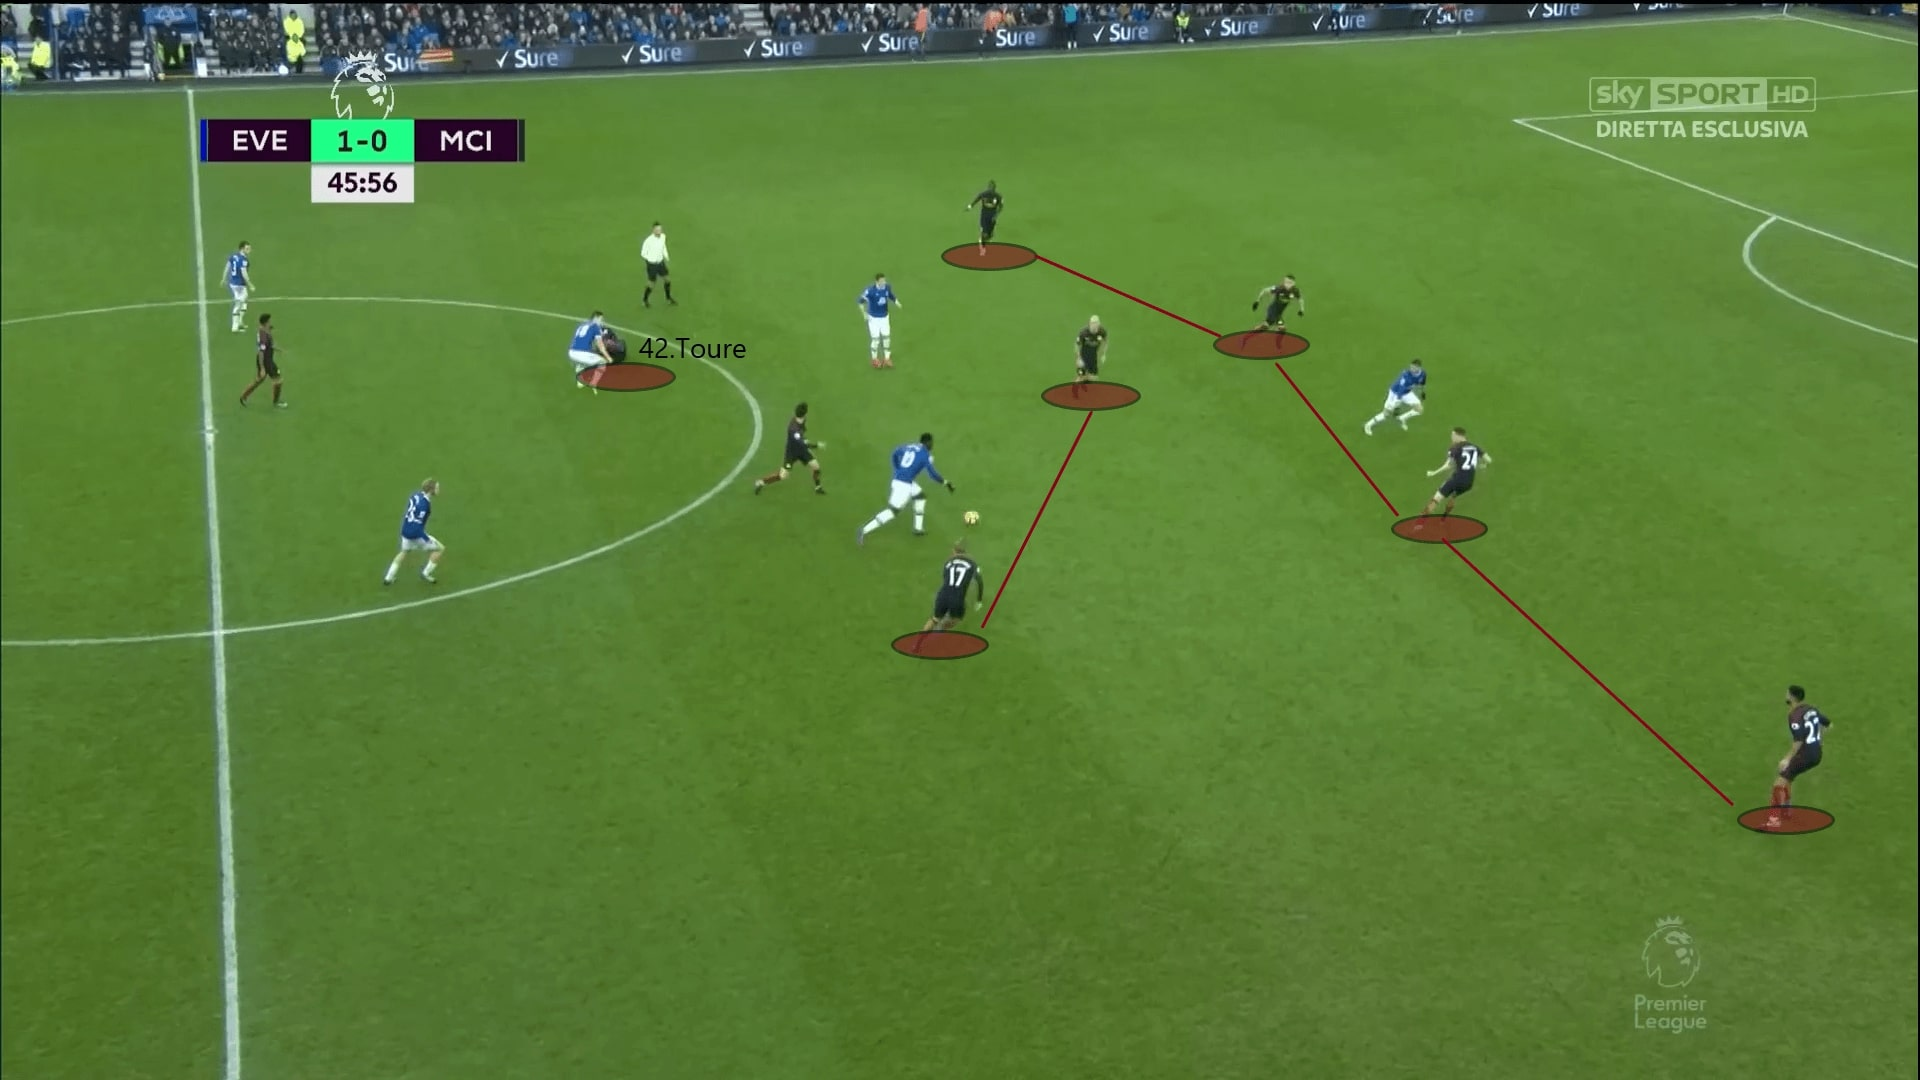 Guardiola's biggest defeat: Everton vs Manchester City - tactical analysis tactics